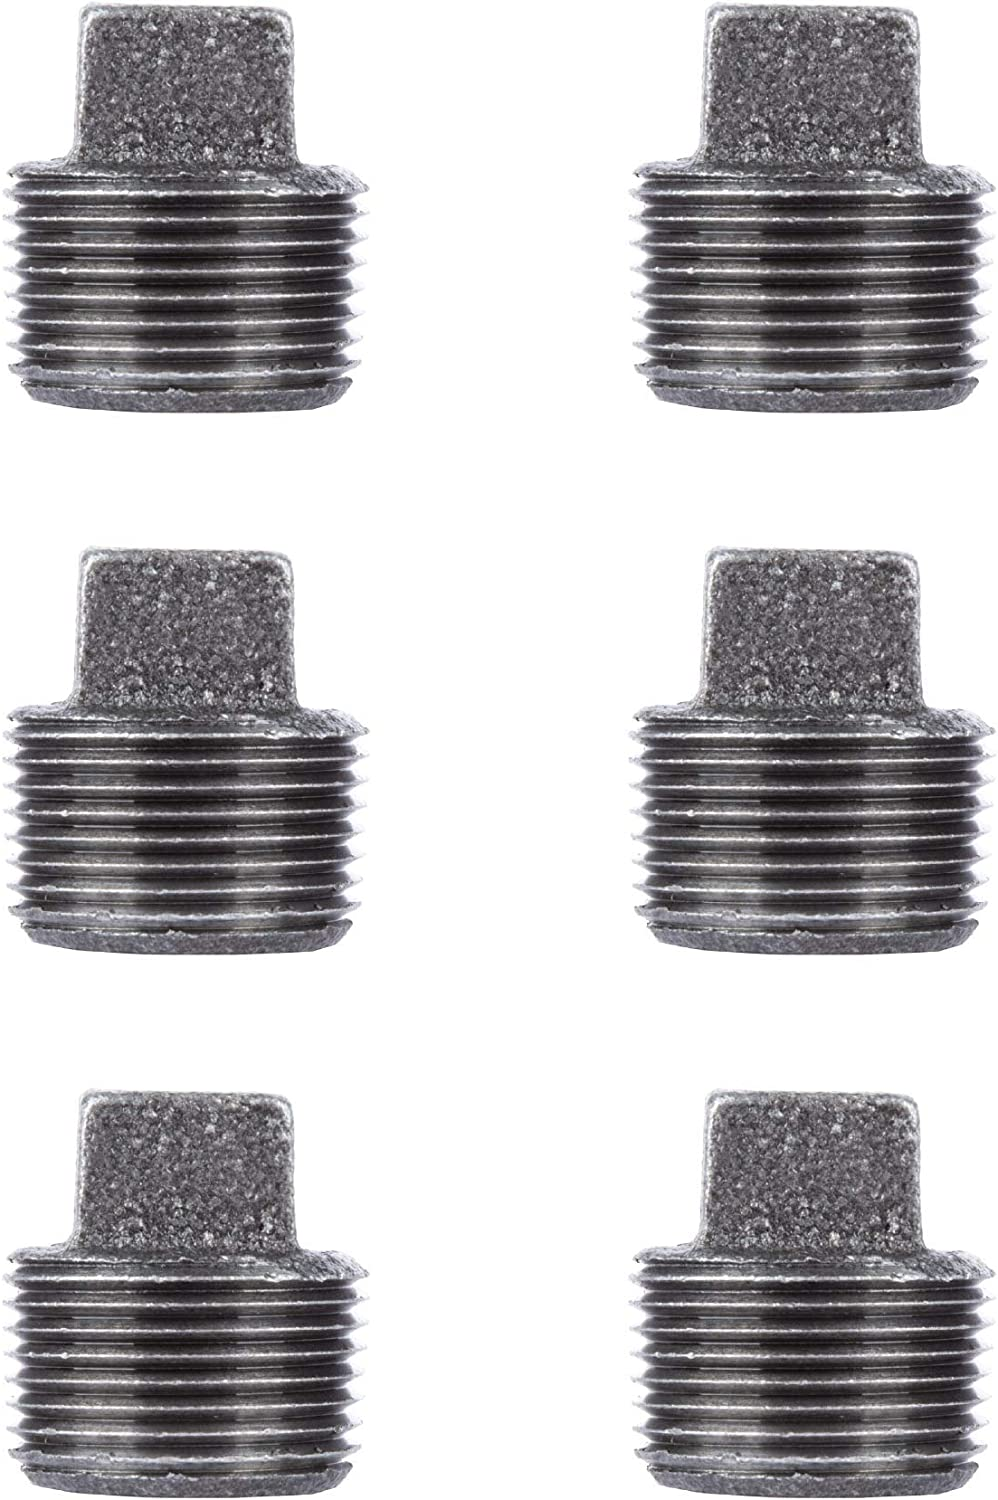 PIPE DÉCOR 1 in. Black Malleable Iron Plug, 6 Pack, for DIY Pipe Furniture Building and Regular Plumbing Applications